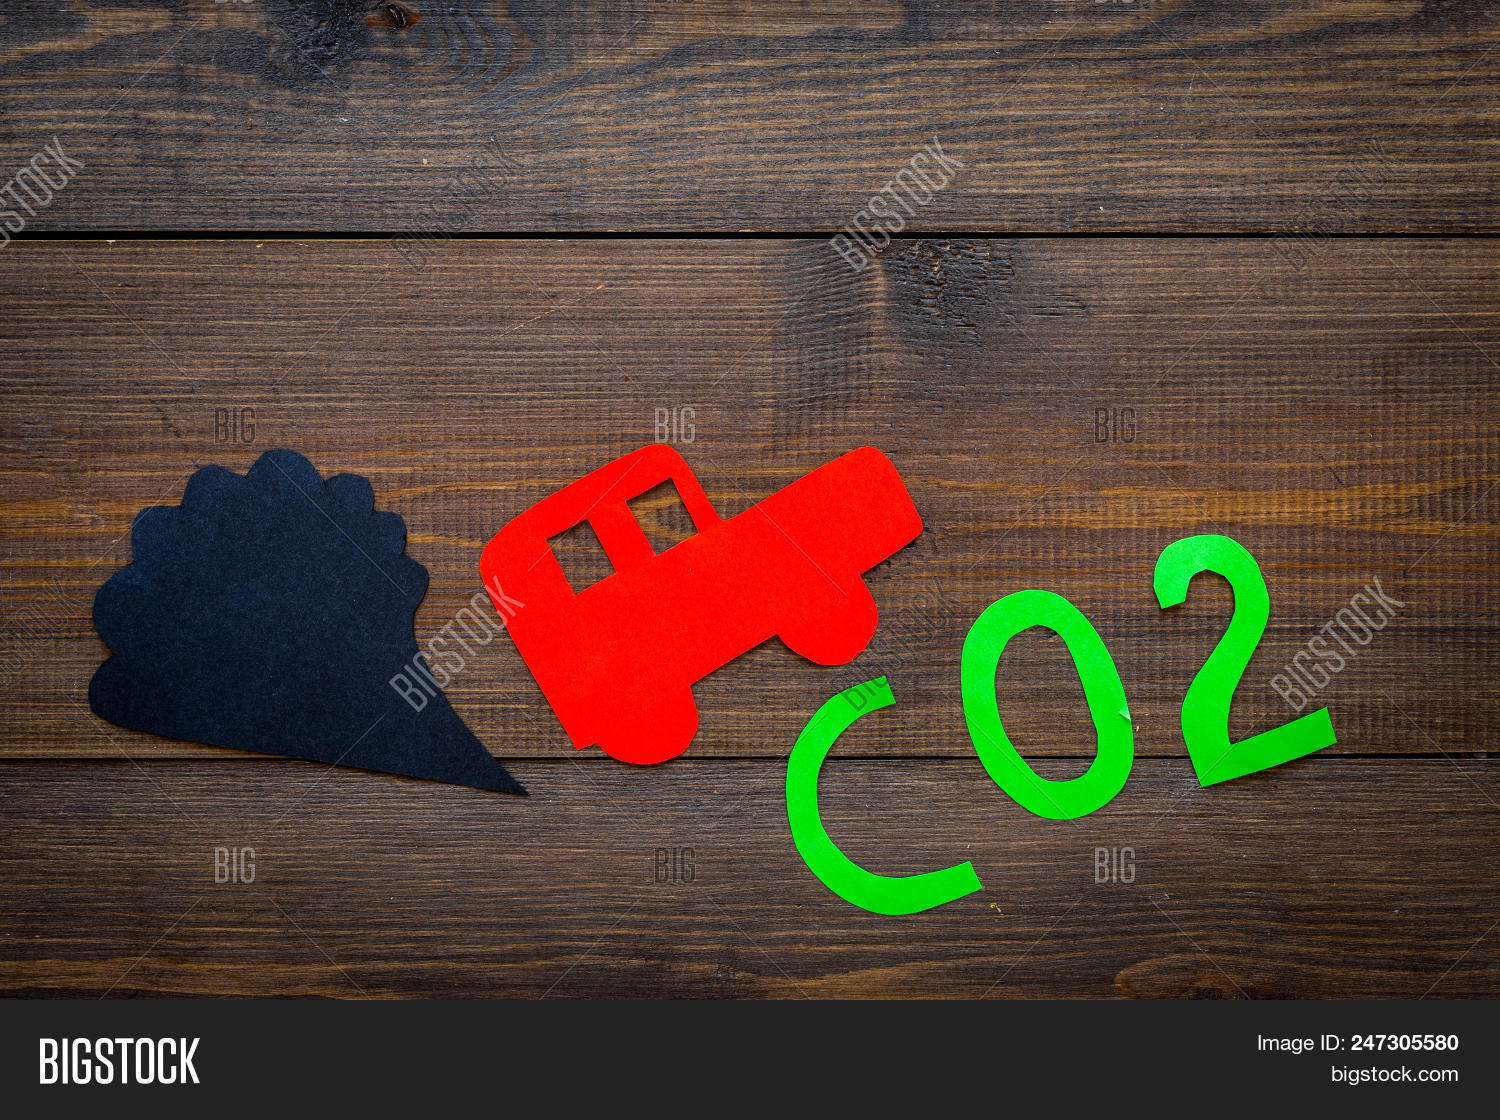 Car Exhaust Co2 Image Photo Free Trial Bigstock